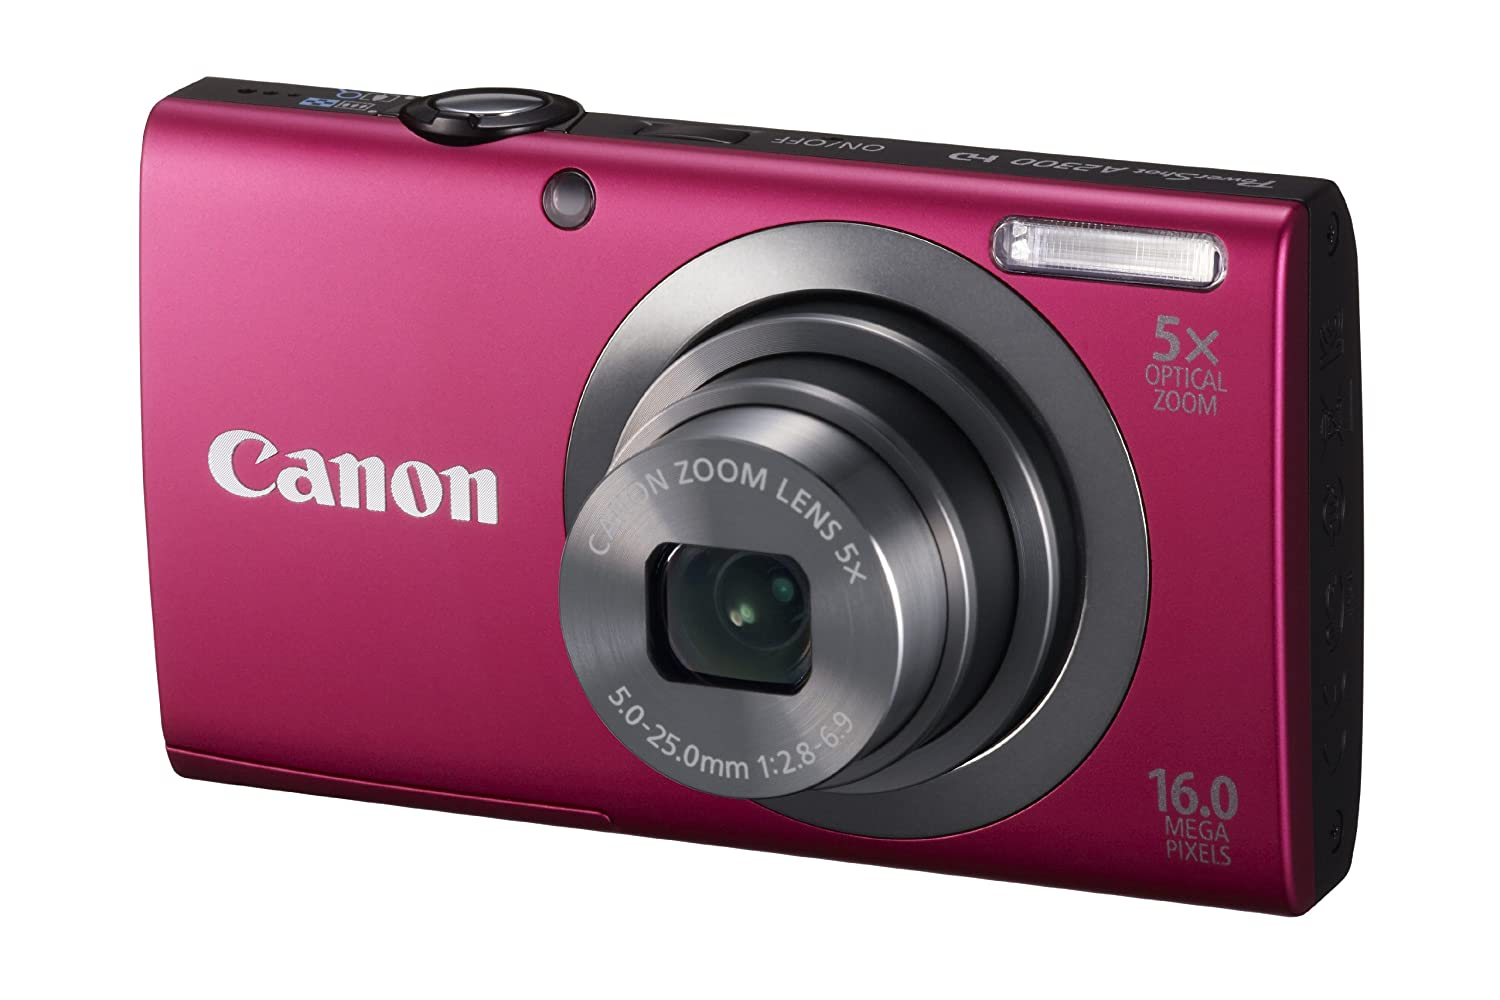 Canon PowerShot A2300 16.0 MP Digital Camera with 5x Digital Image Stabilized Zoom 28mm Wide-Angle Lens with 720p HD Video Recording ($59.00)